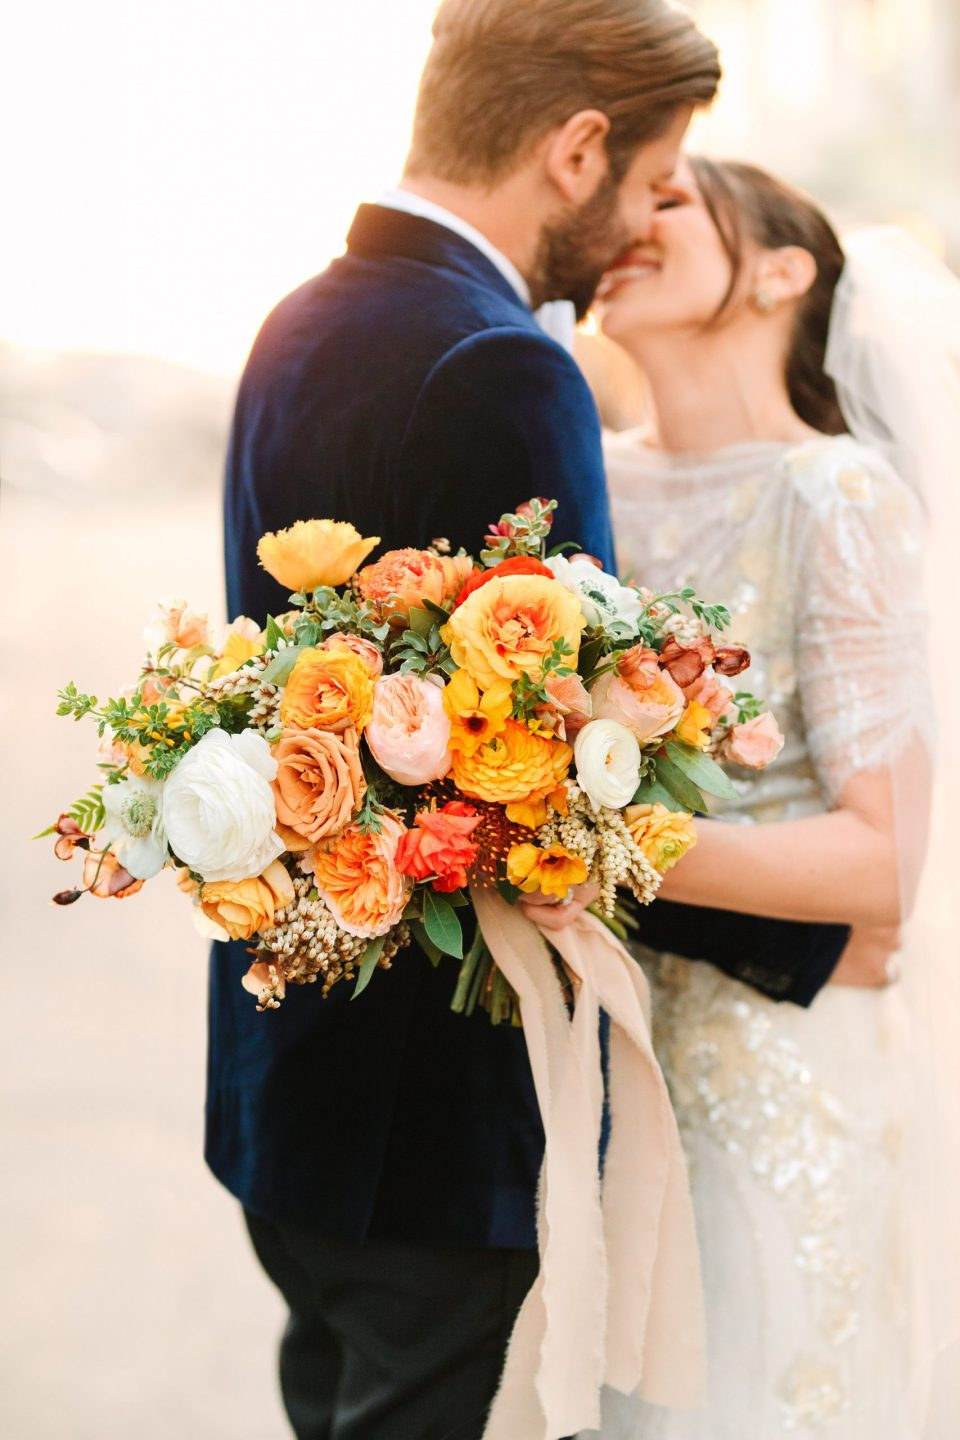 Wedding couple embracing with colorful bouquet www.marycostaweddings.com